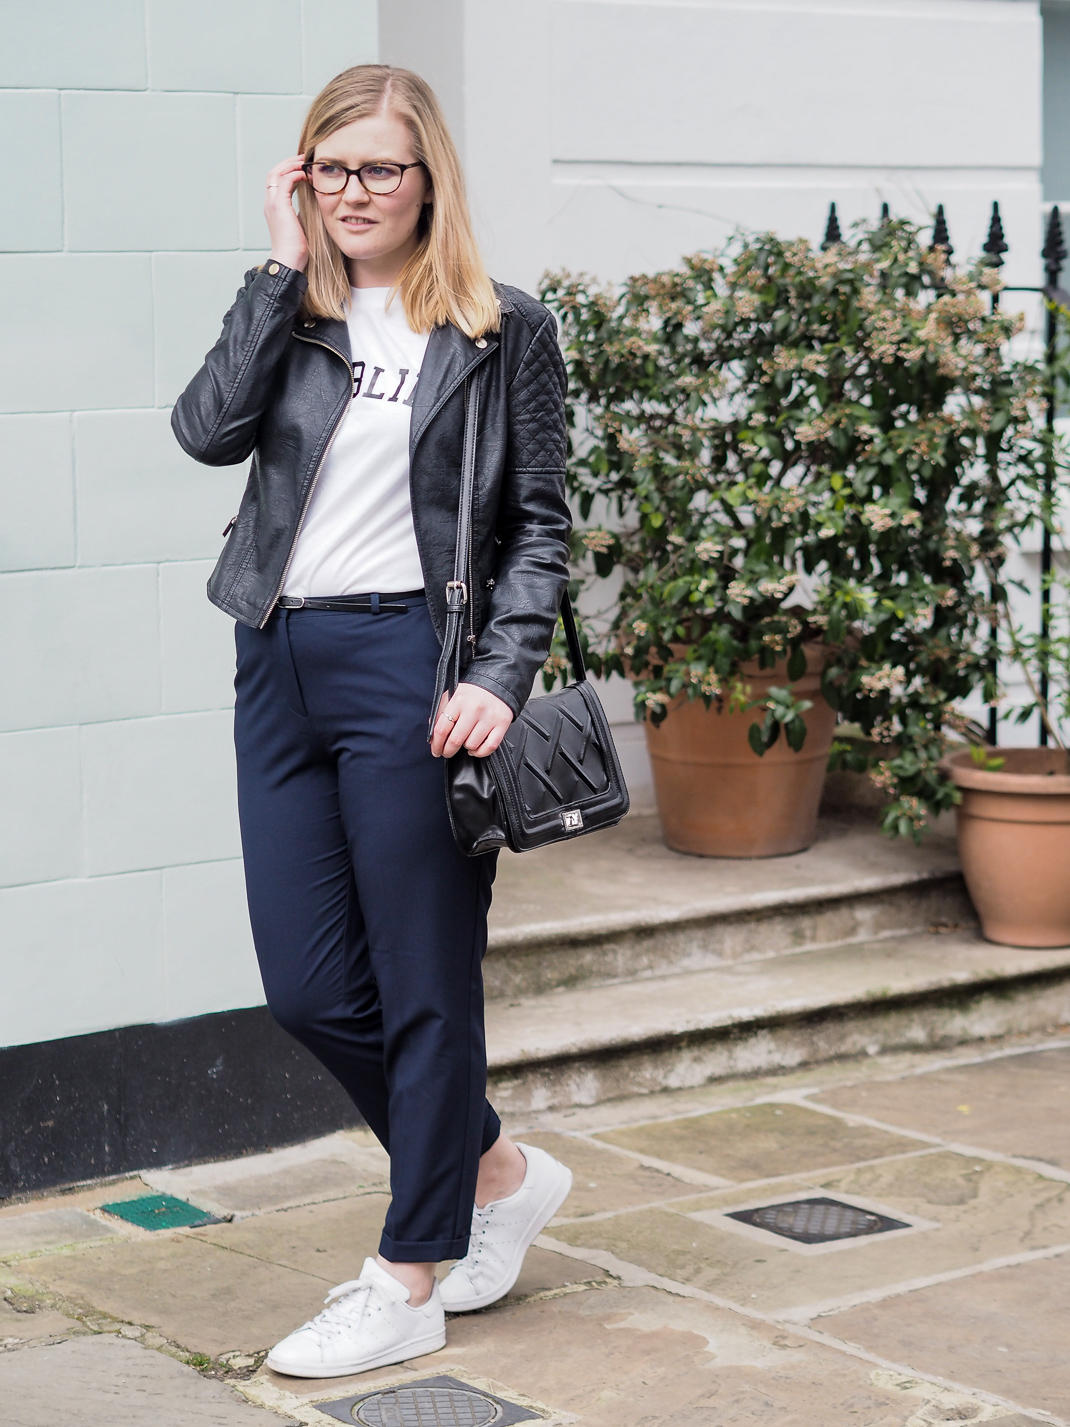 casual outfit: trousers, tshirt, leather jacket, trainers.